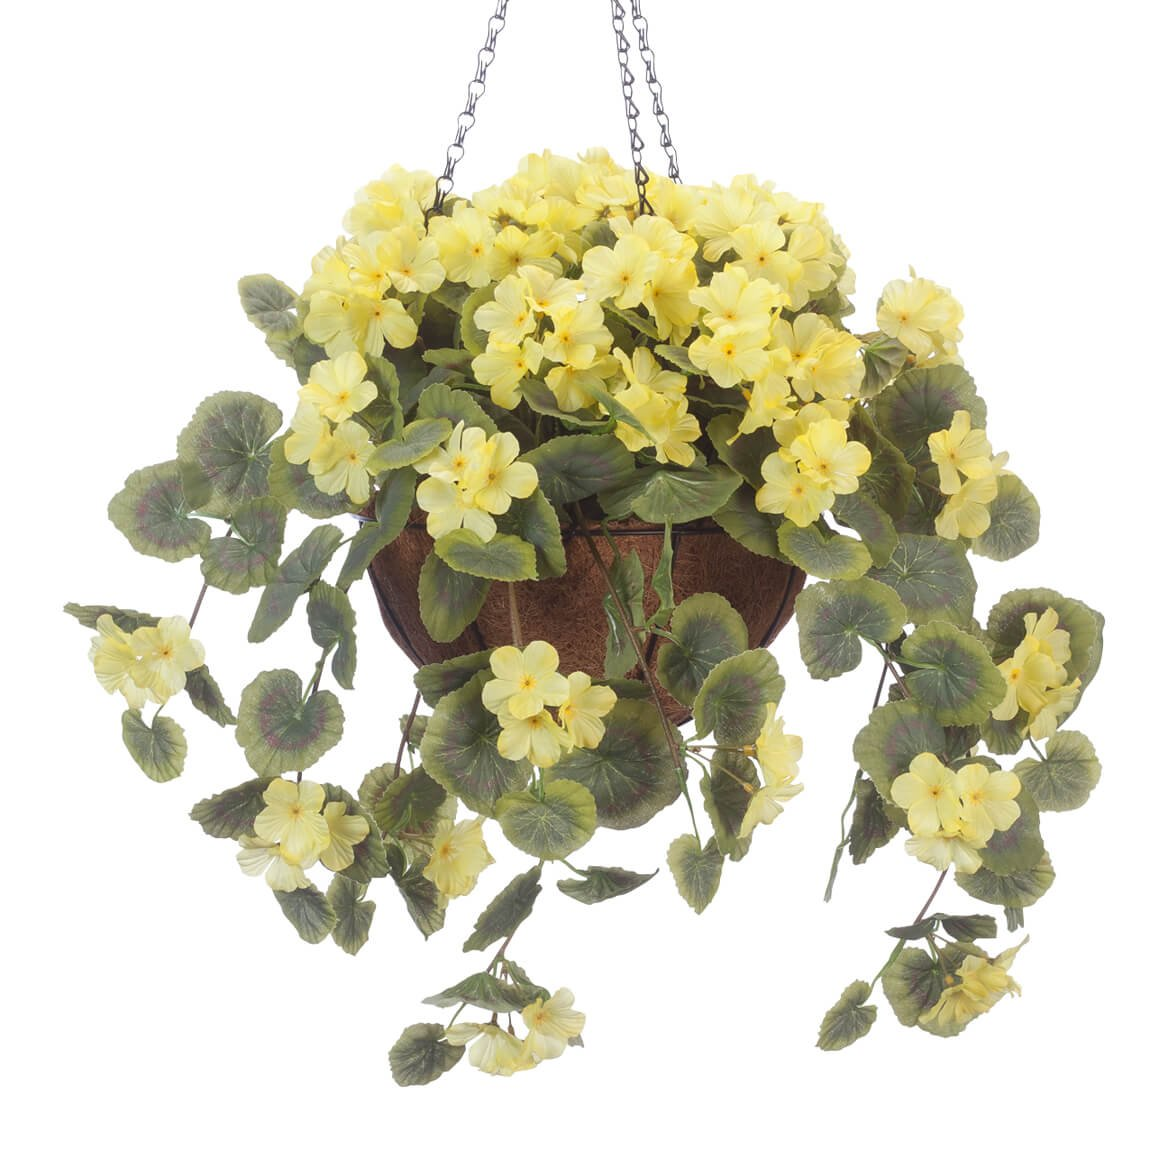 OakRidge Miles Kimball Fully Assembled Artificial Geranium Hanging Basket, 10 Diameter and 18 Chain Yellow Polyester Plastic Flowers in Metal and Coco Fiber Liner Basket for Indoor Outdoor Use